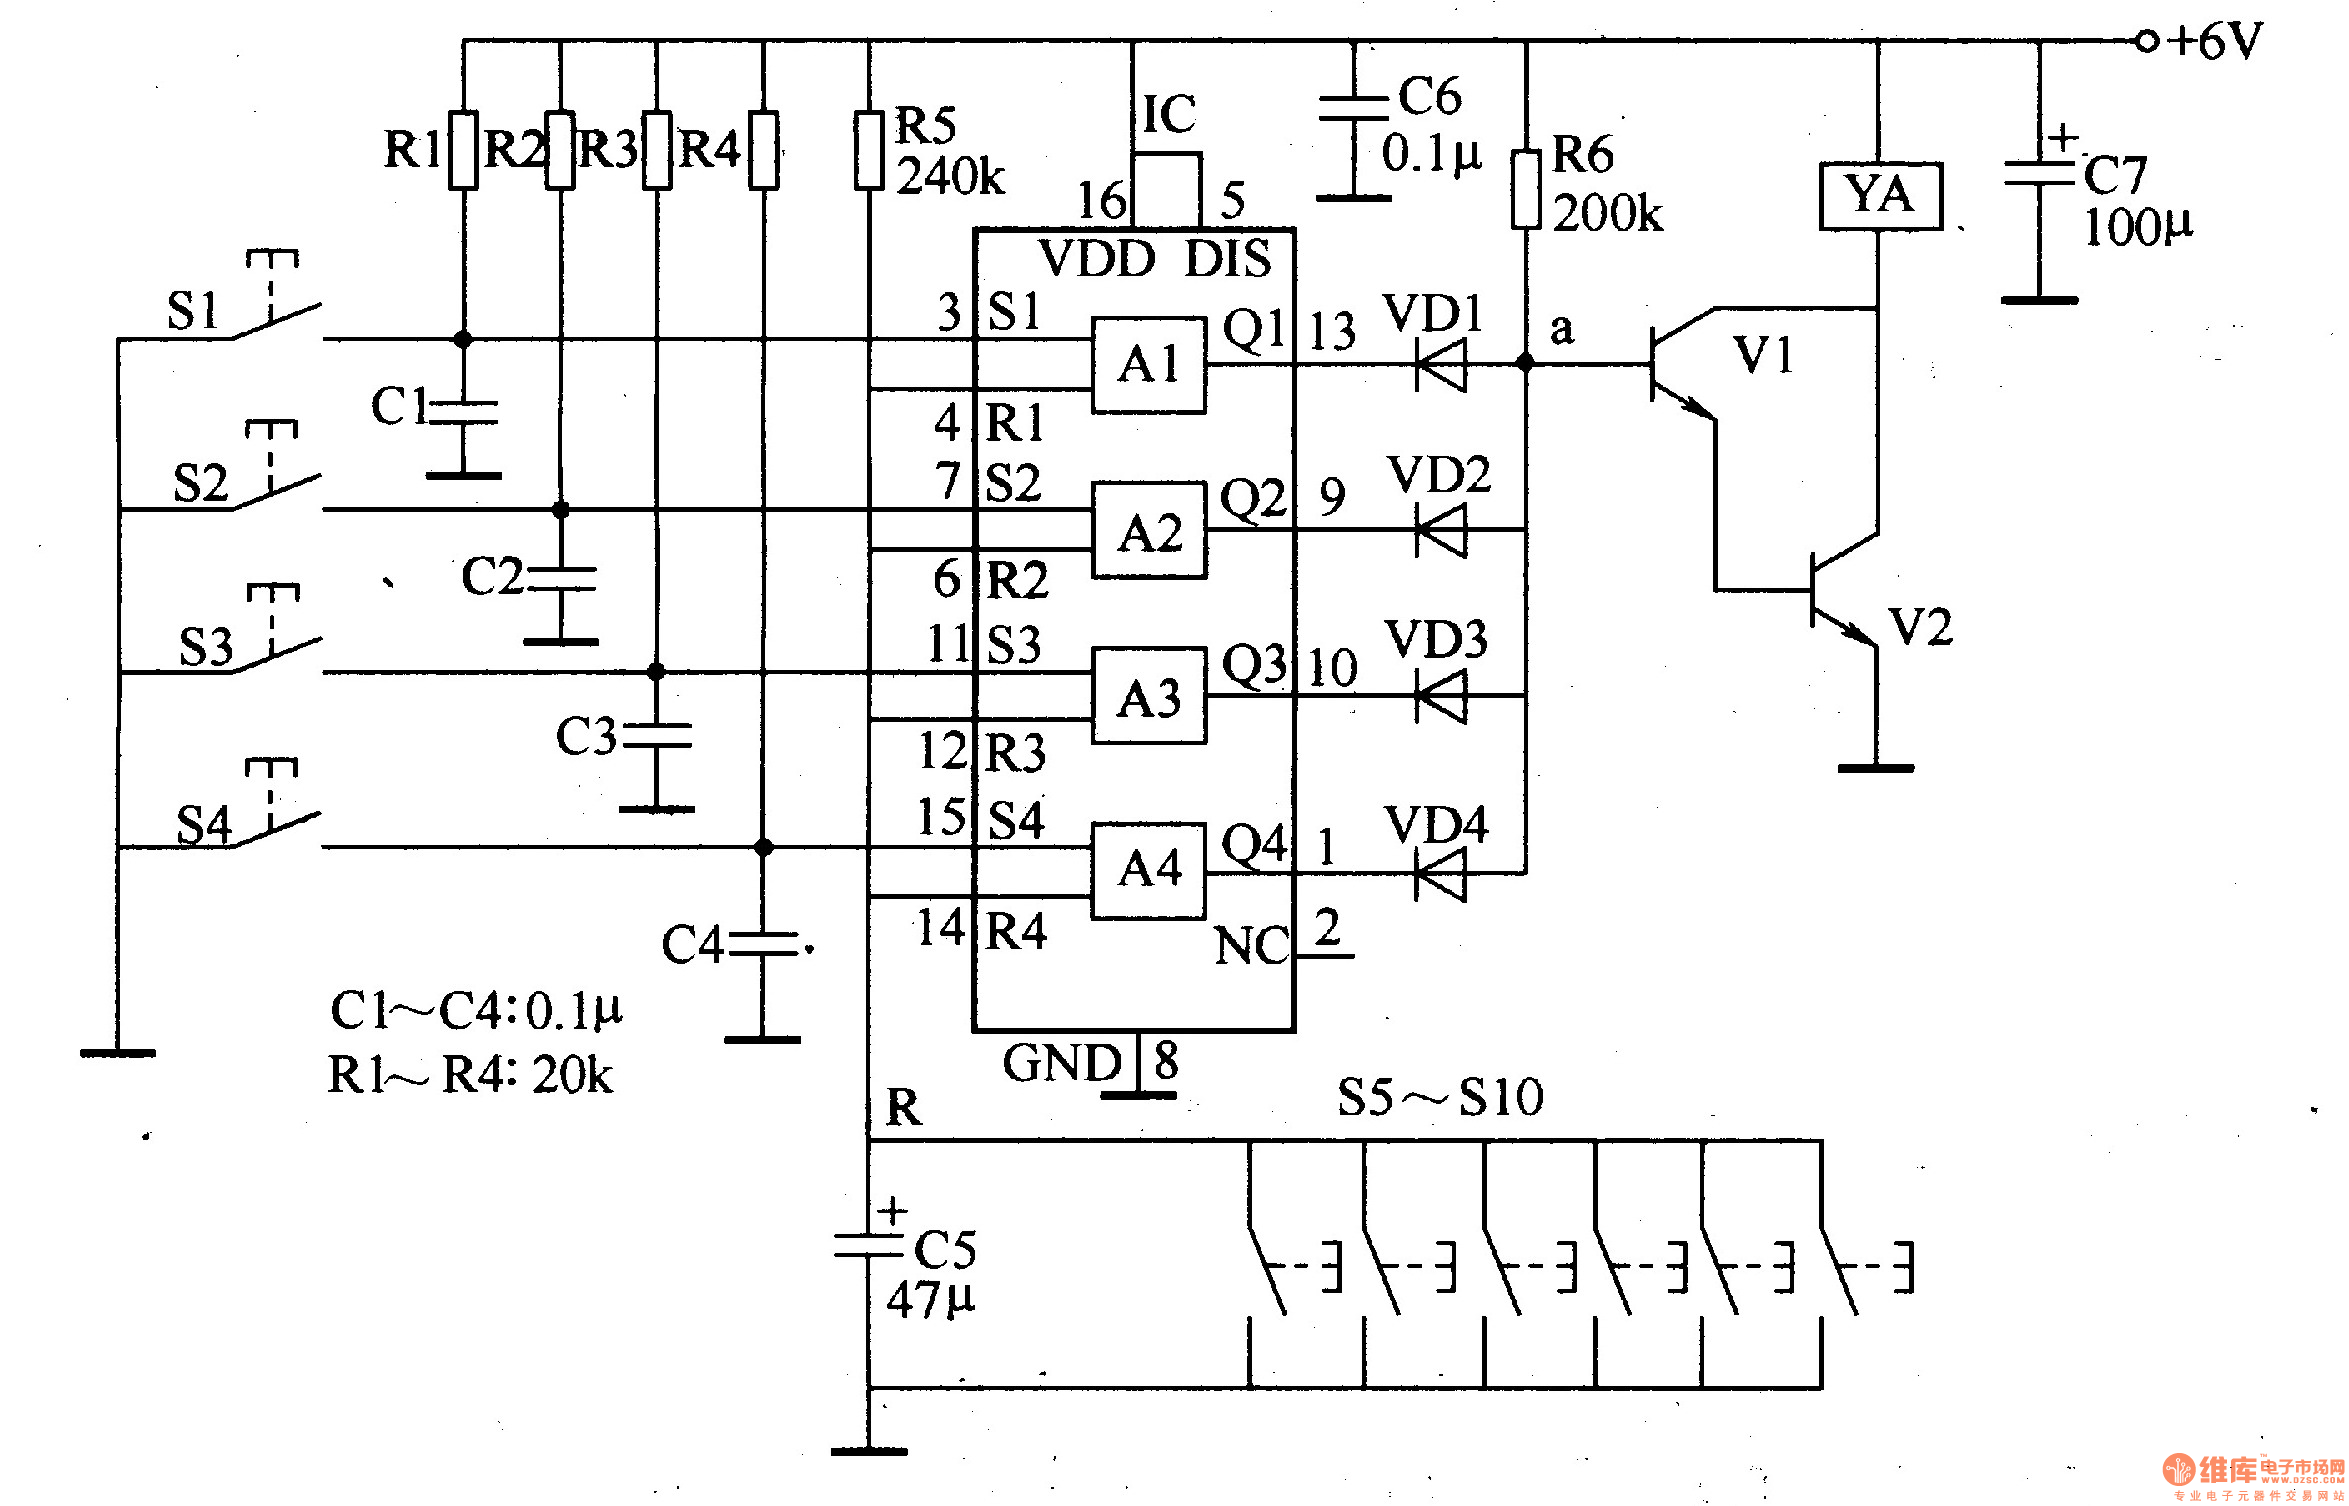 Digital Lock 8 Electrical Equipment Circuit Diagram Wwwseekiccom Circuitdiagram Basiccircuit Biquadnotchfilterhtml